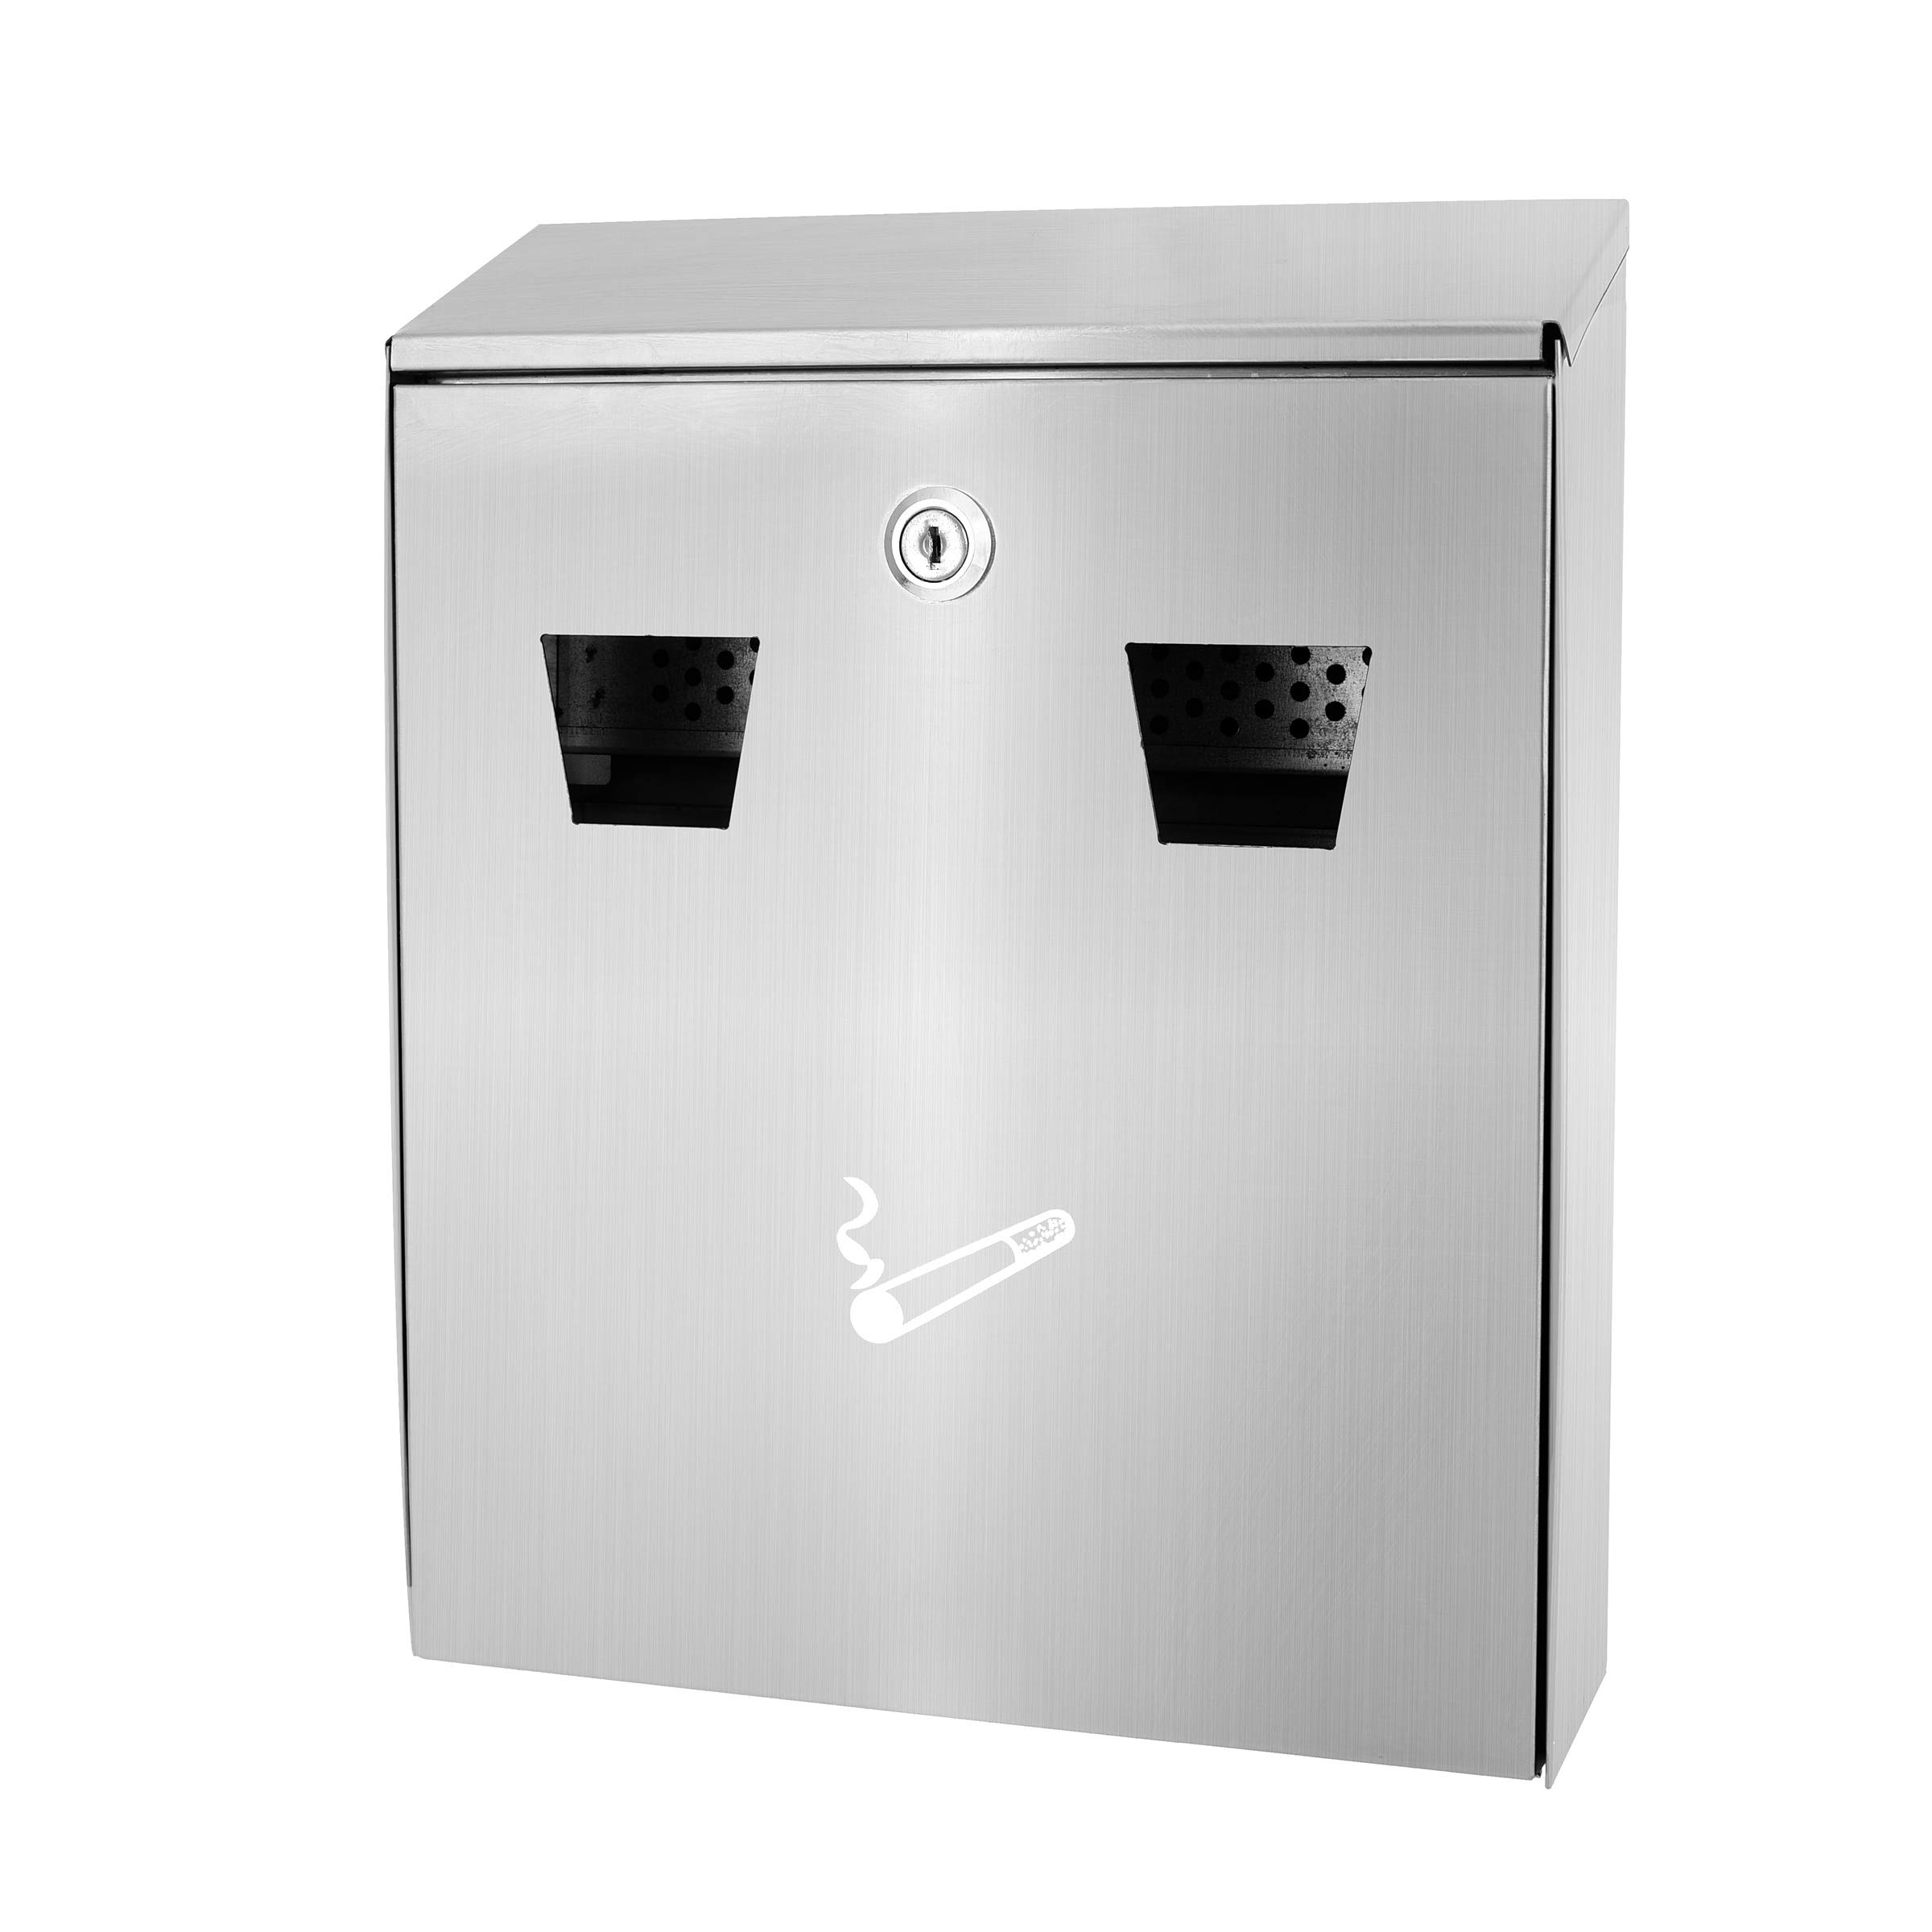 Alpine Industries All-in-One Cigarette Disposal Station - Wall Mounted Receptacle Box - Easy Cigarette Waste Accommodation - for Outdoor Use